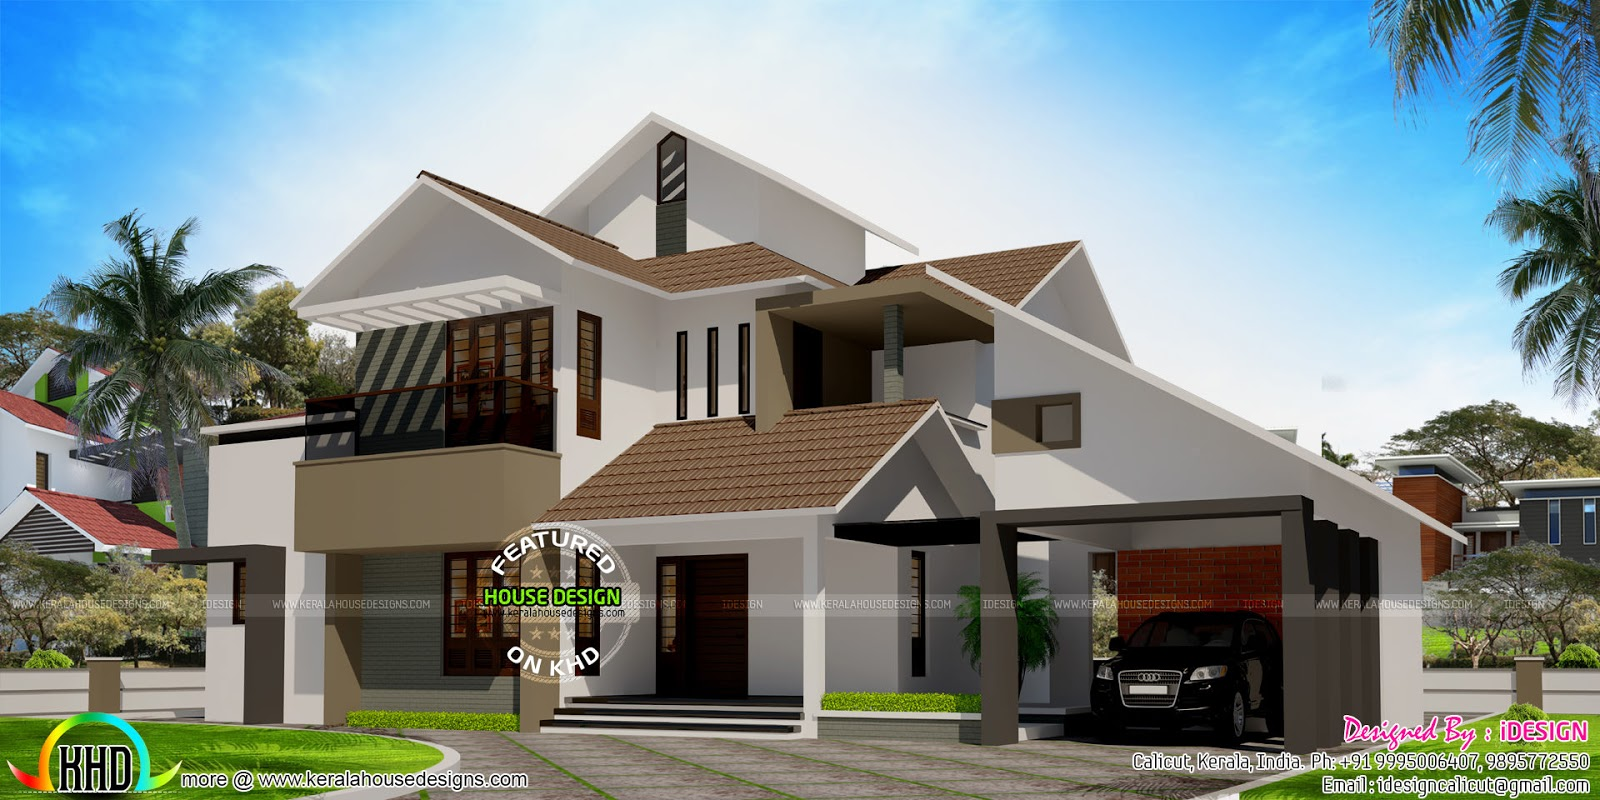 50 lakhs cost estimated modern home Kerala home design